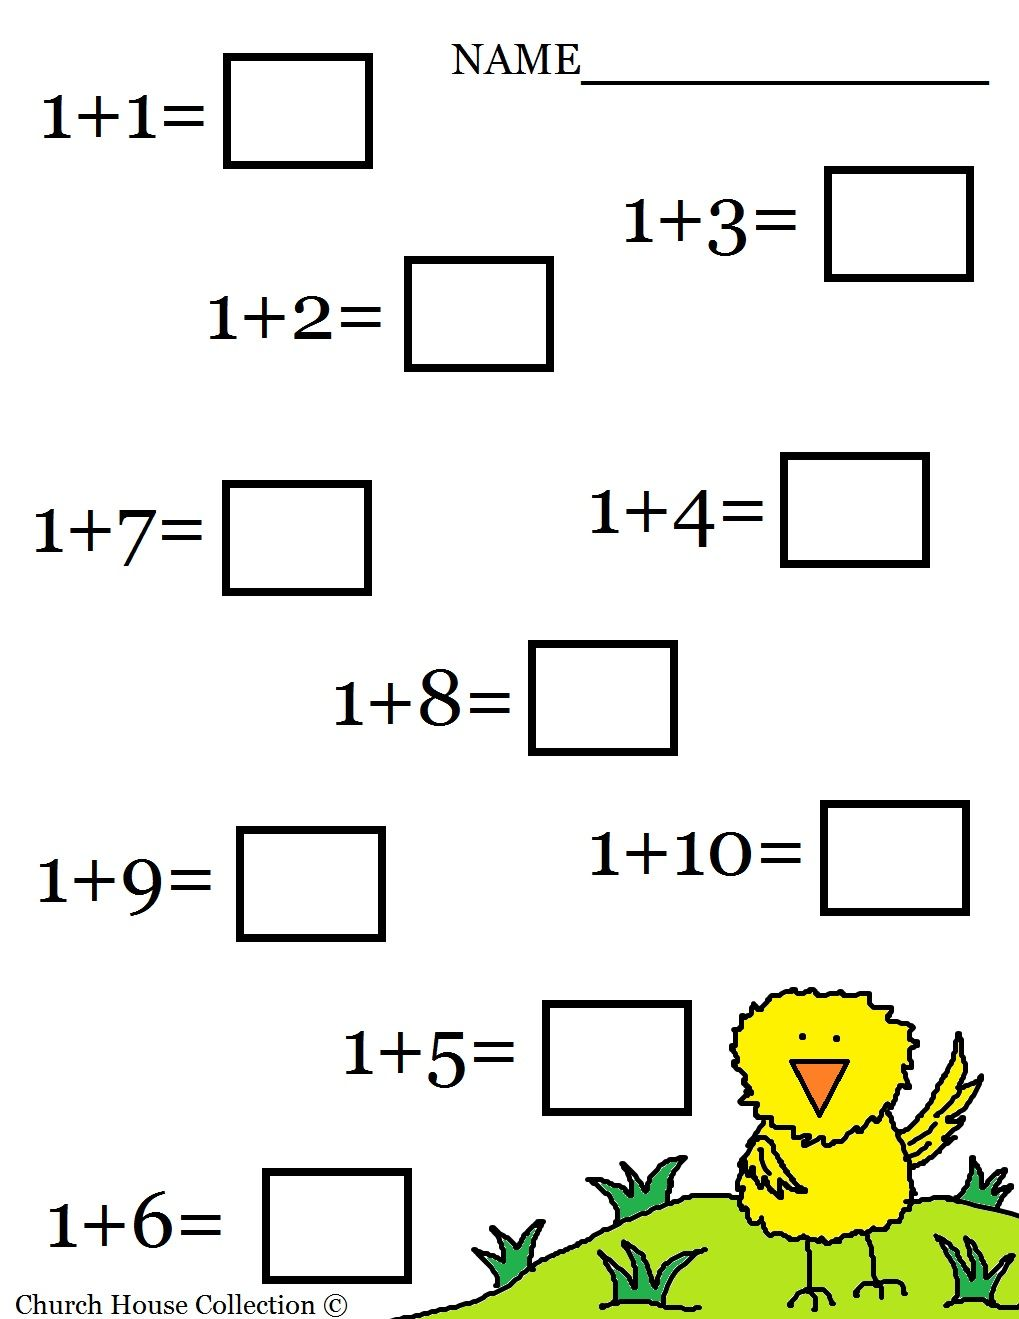 Aldiablosus  Inspiring  Images About Worksheets  Math On Pinterest  Math Sheets  With Exciting  Images About Worksheets  Math On Pinterest  Math Sheets Math Worksheets For Kindergarten And Simple Addition With Easy On The Eye Place Value Worksheet For Grade  Also Guru Nanak Worksheet In Addition Figure Ground Perception Worksheets And Worksheet For Nursery Kids As Well As  Digit Division With Remainders Worksheets Additionally Multiplication Wheels Worksheets From Pinterestcom With Aldiablosus  Exciting  Images About Worksheets  Math On Pinterest  Math Sheets  With Easy On The Eye  Images About Worksheets  Math On Pinterest  Math Sheets Math Worksheets For Kindergarten And Simple Addition And Inspiring Place Value Worksheet For Grade  Also Guru Nanak Worksheet In Addition Figure Ground Perception Worksheets From Pinterestcom